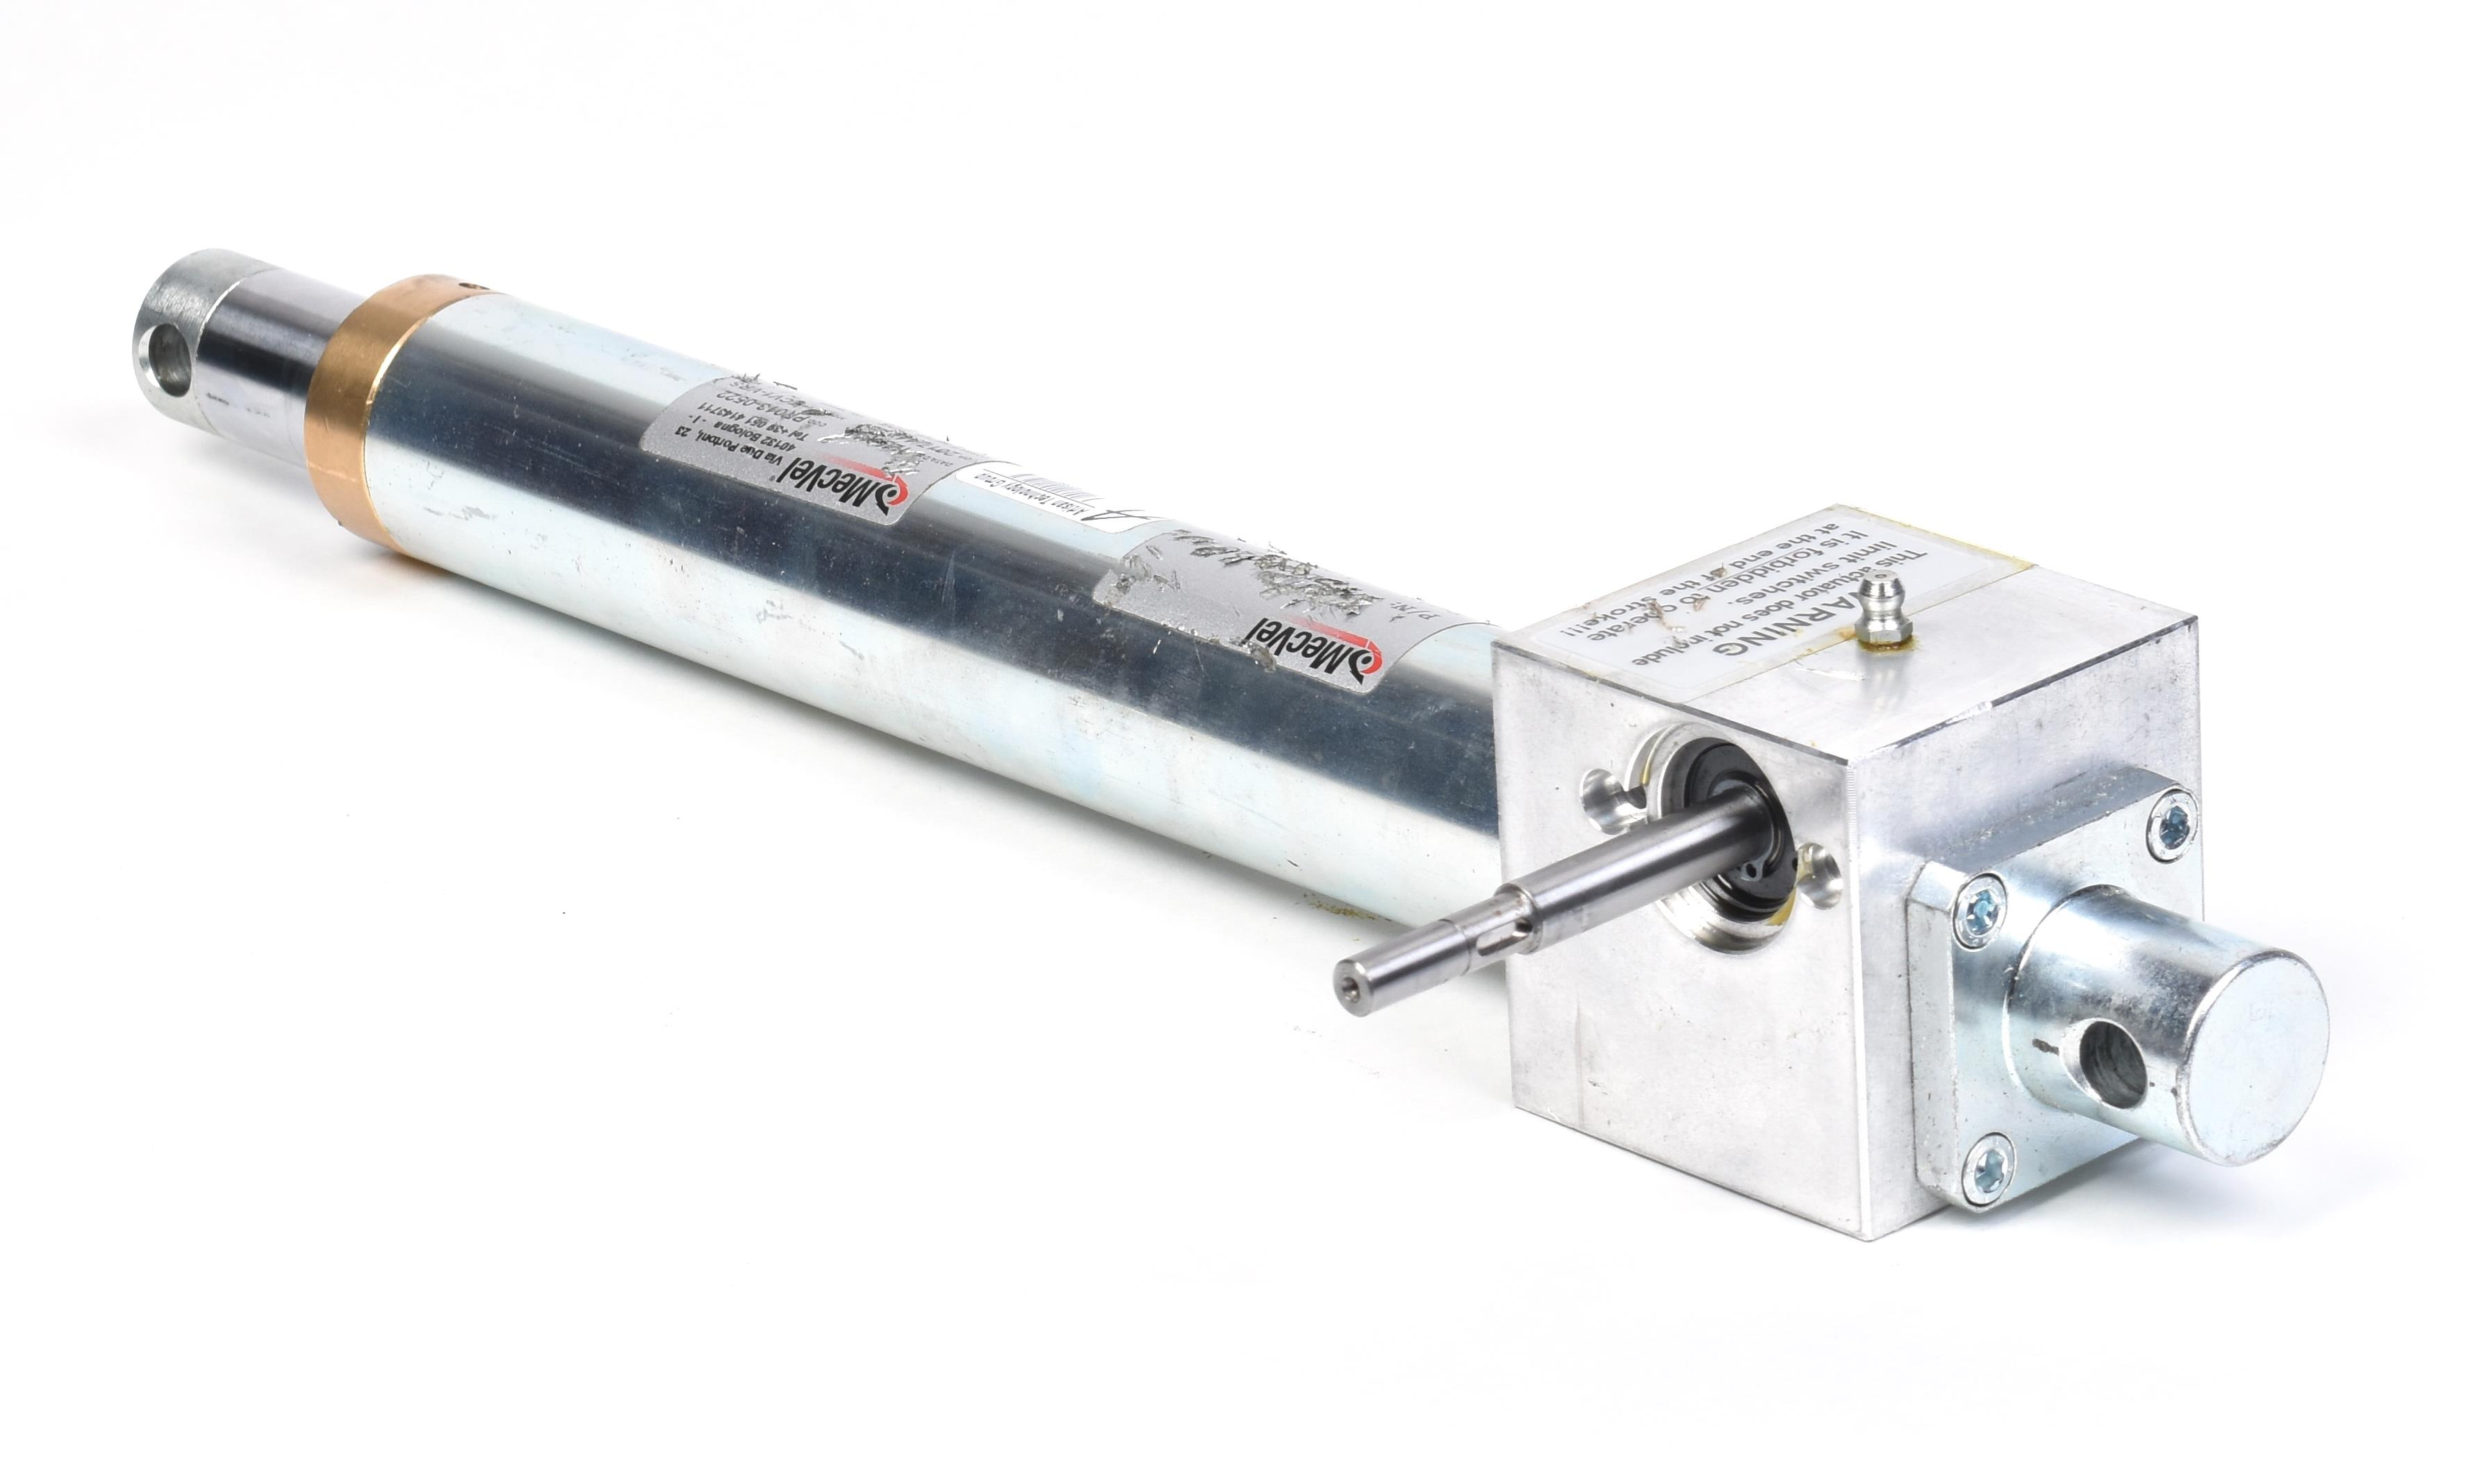 MecVel ECV1 Series Linear Actuators